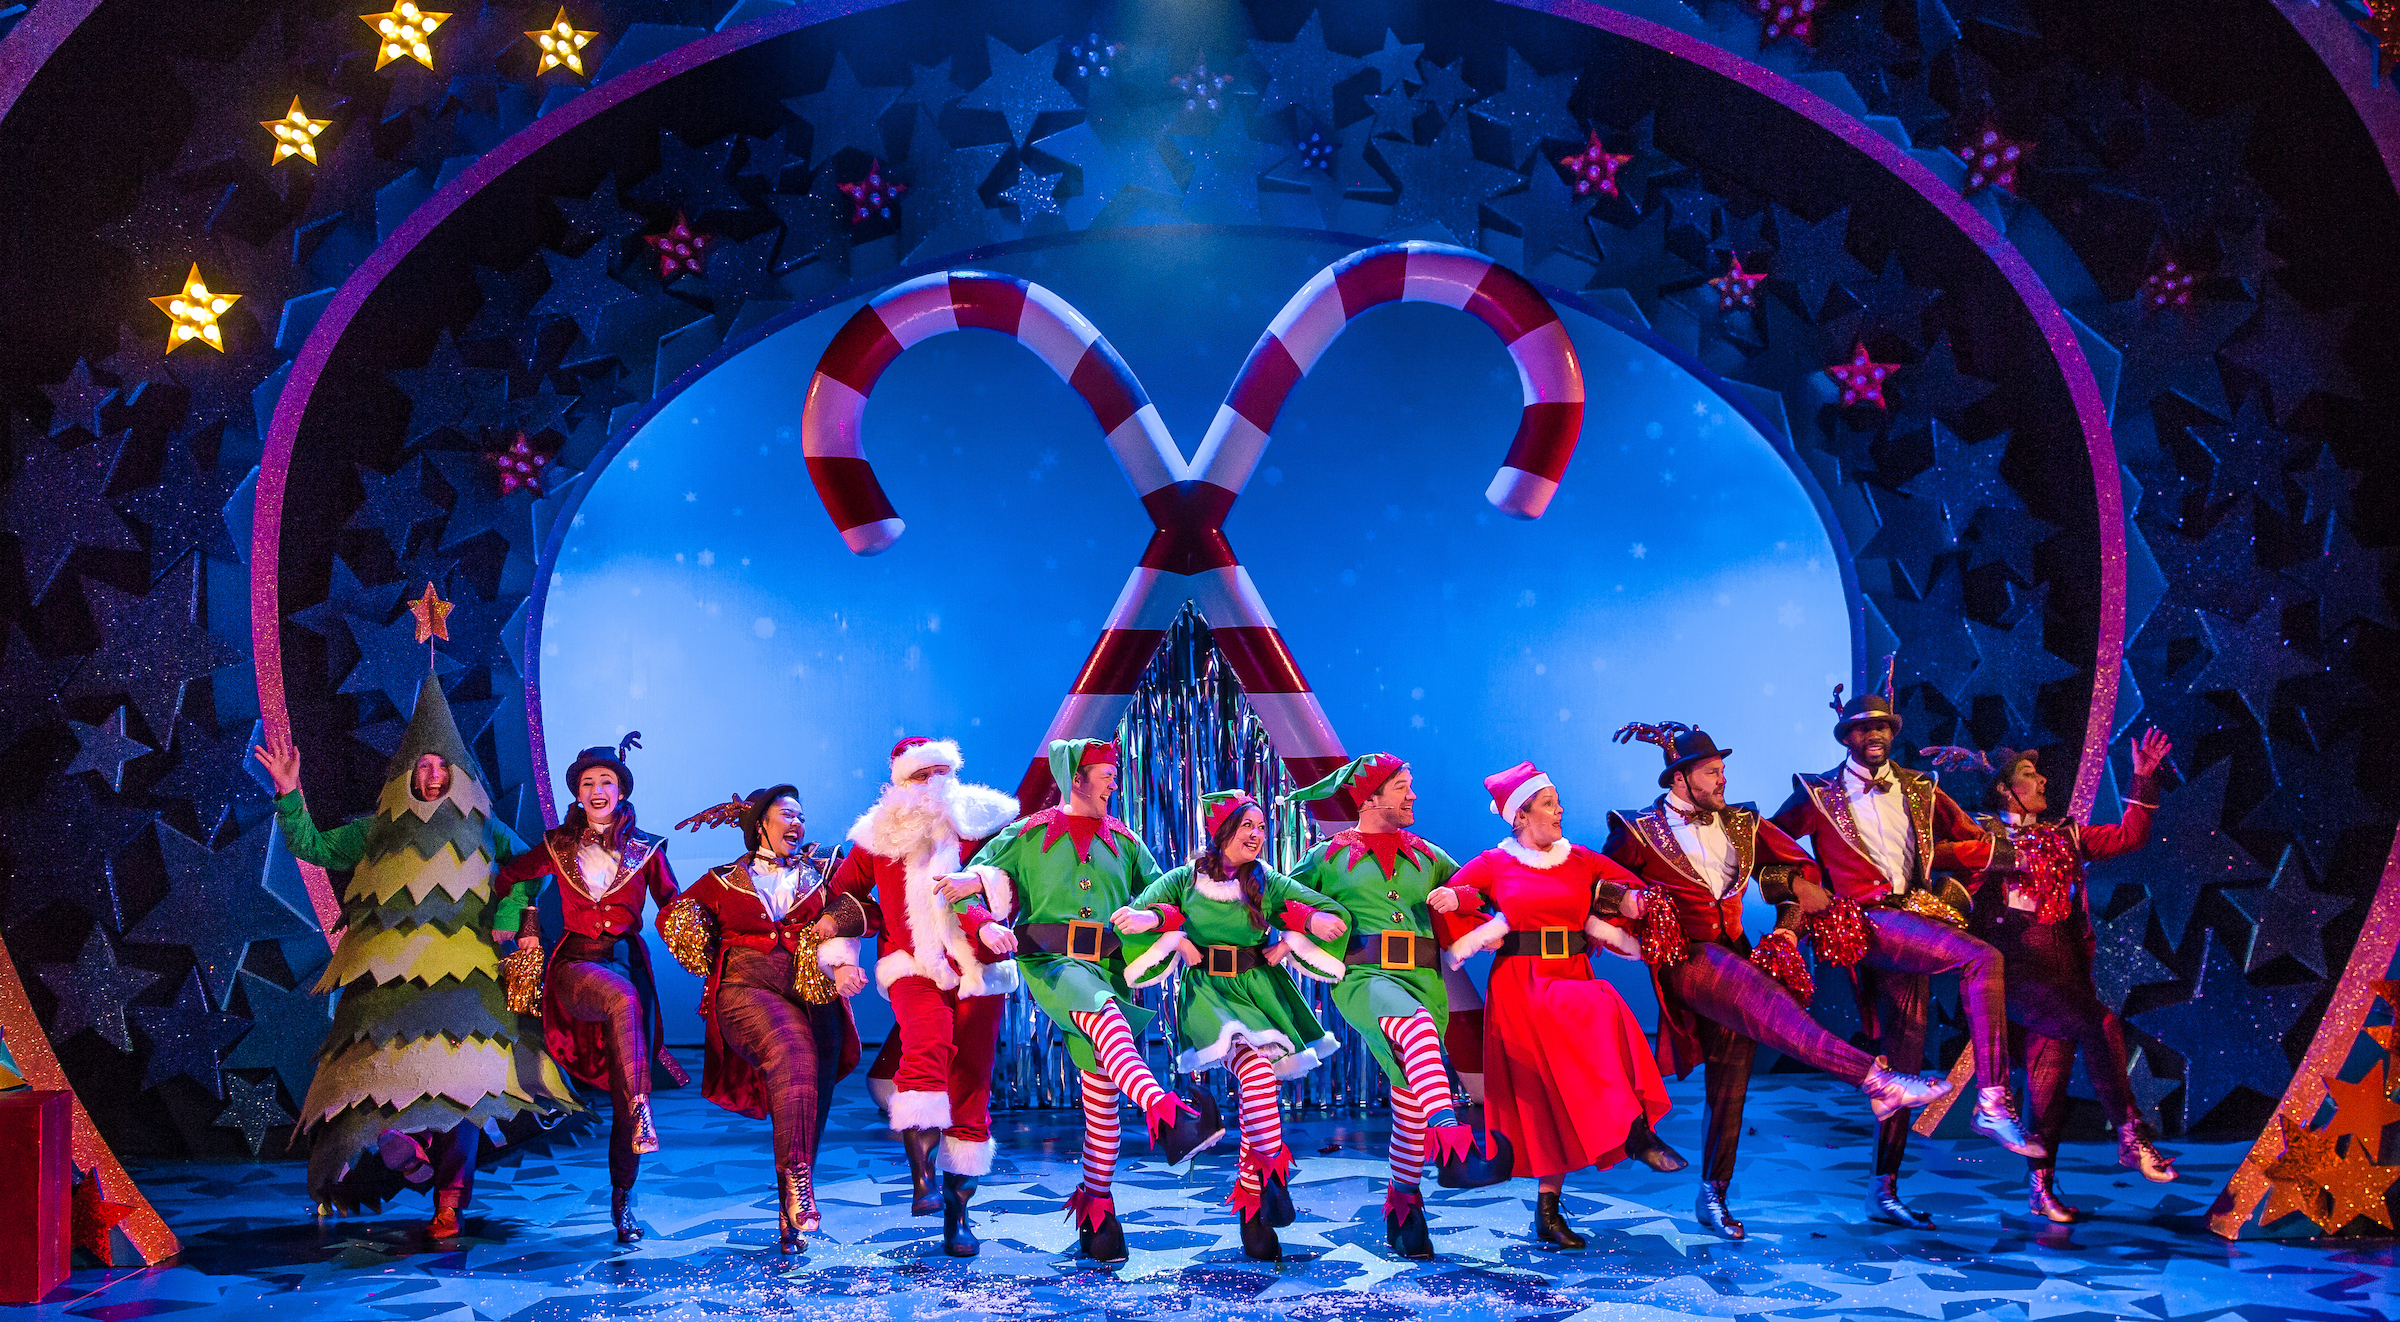 A scene from Nativity! The Musical, which is at Leeds Grand during the Christmas season. Picture by Richard Davenport.